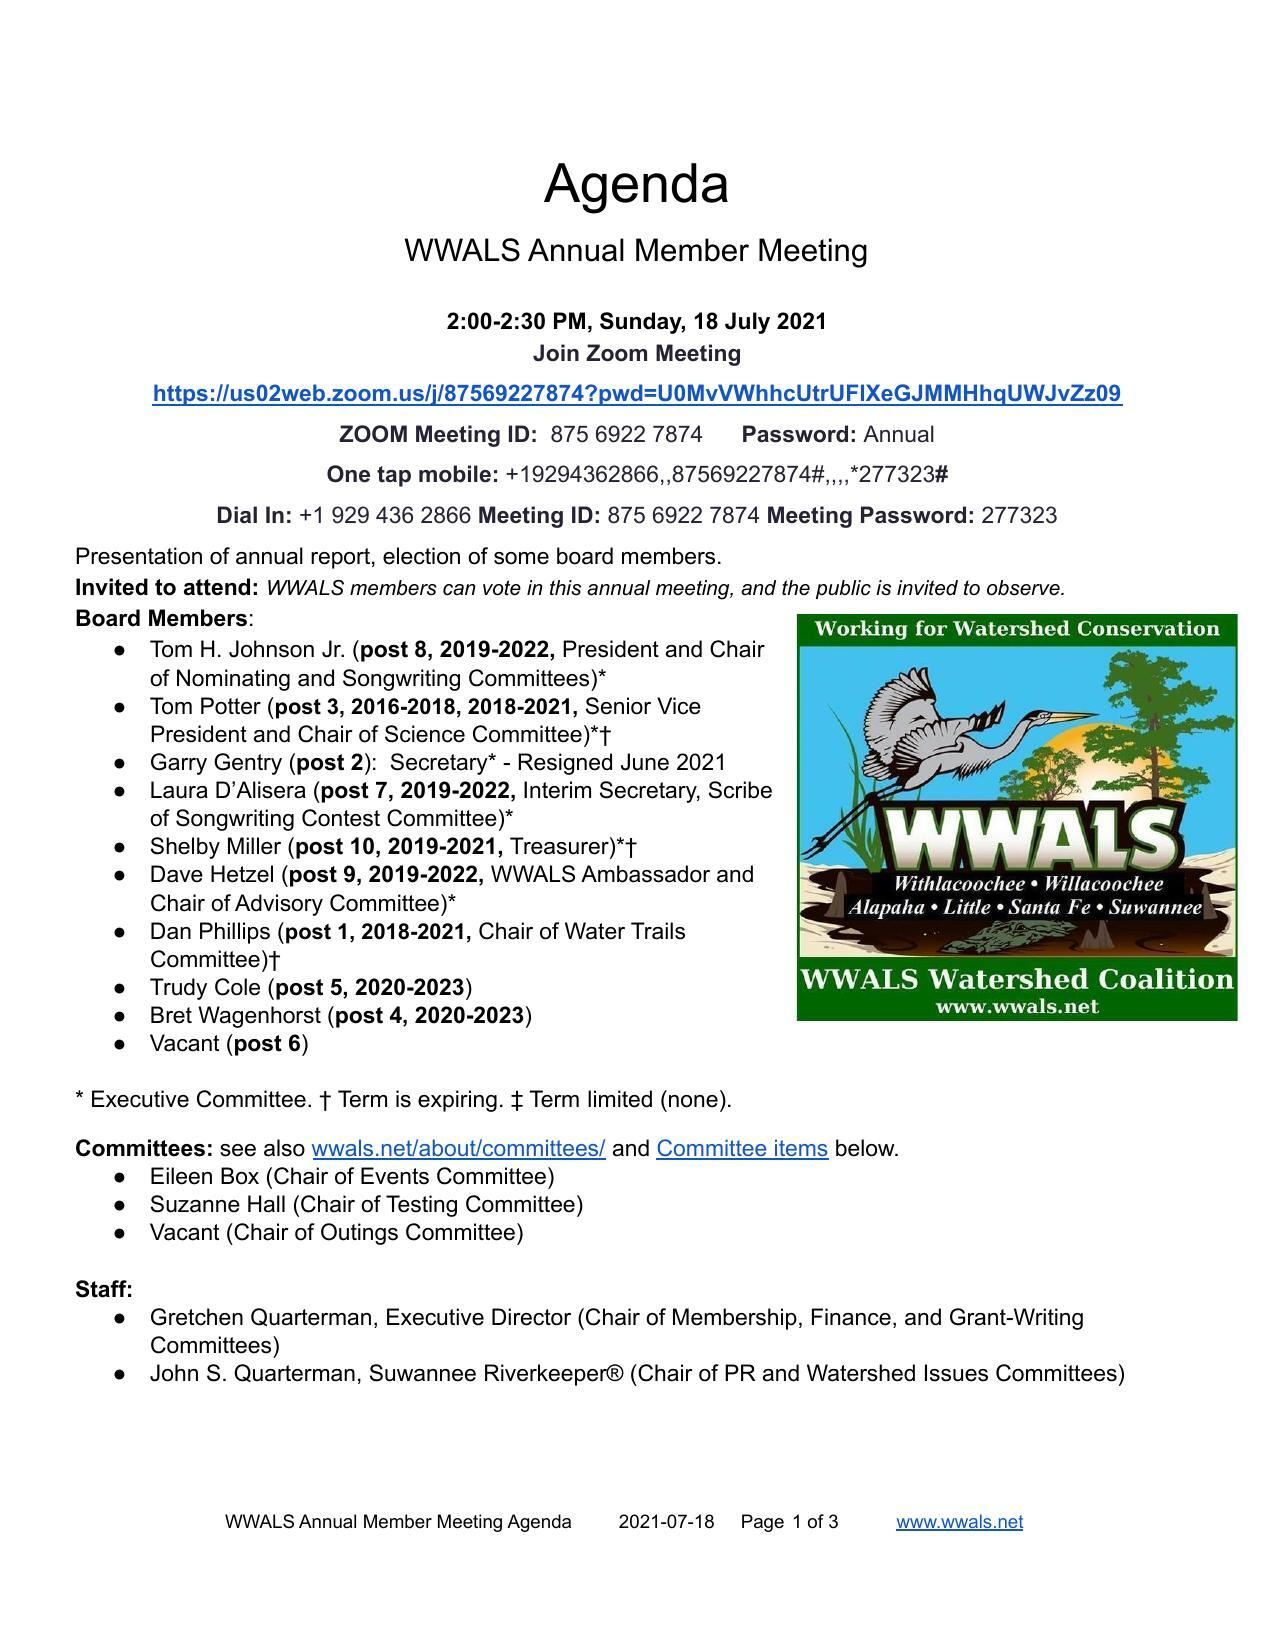 [Who: Annual Member Meeting 2021-07-18]